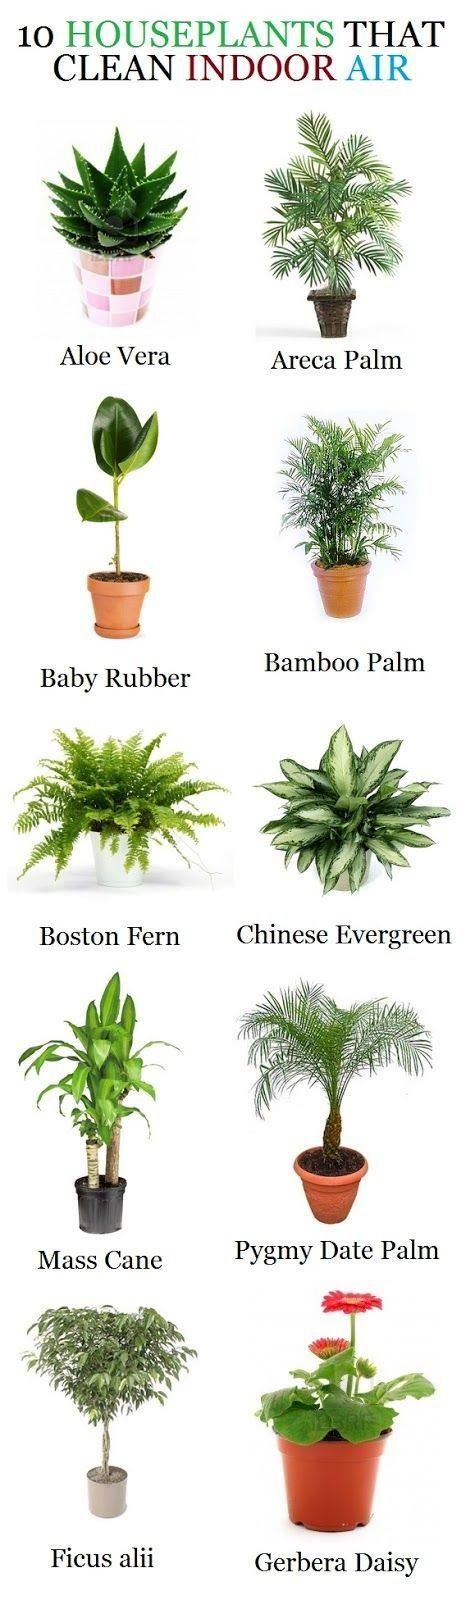 Need something to improve your ordinary space into a breath of fresh air, look no further with these beautiful plants that clean and purify the air around you from toxins, allergens and pollution.